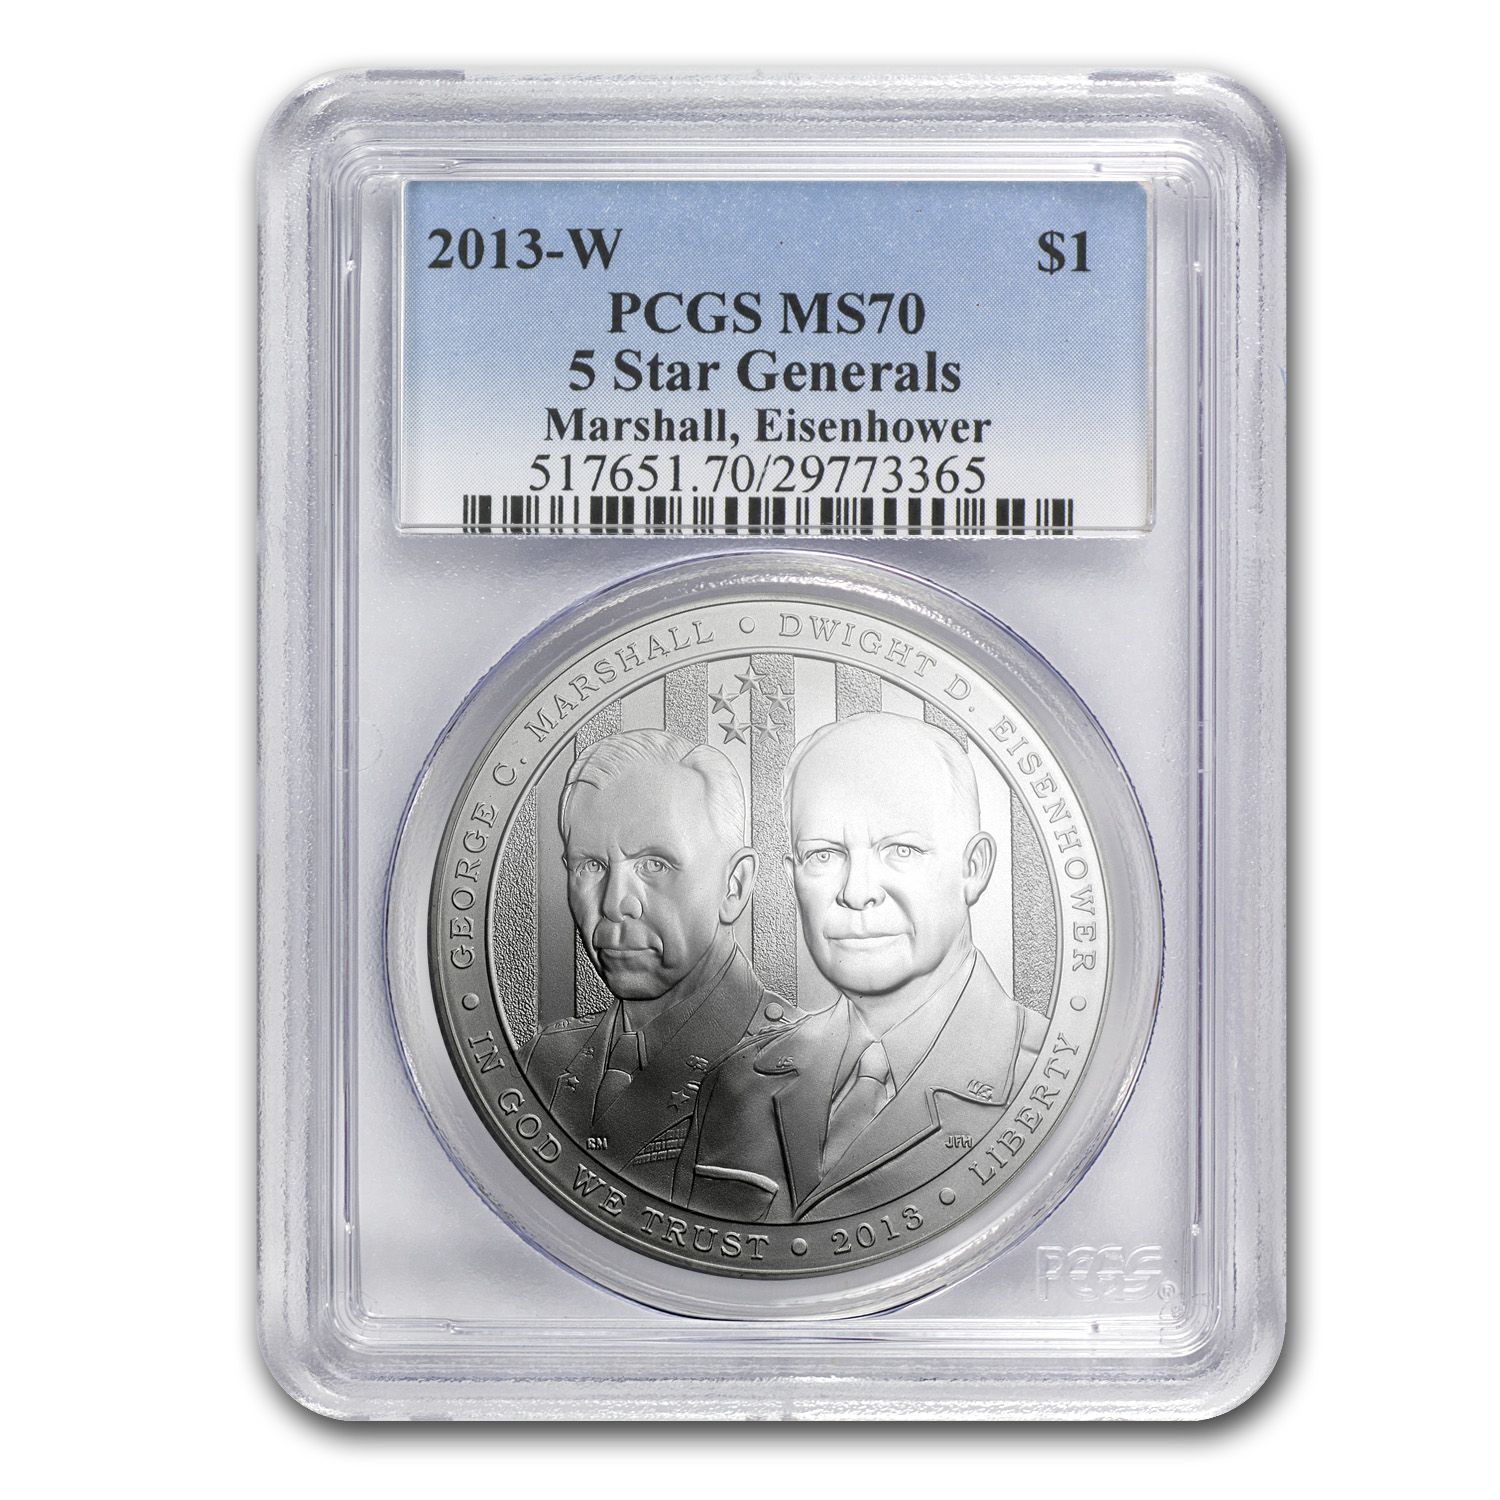 2013-W Five Star General $1 Silver Commem MS-70 PCGS